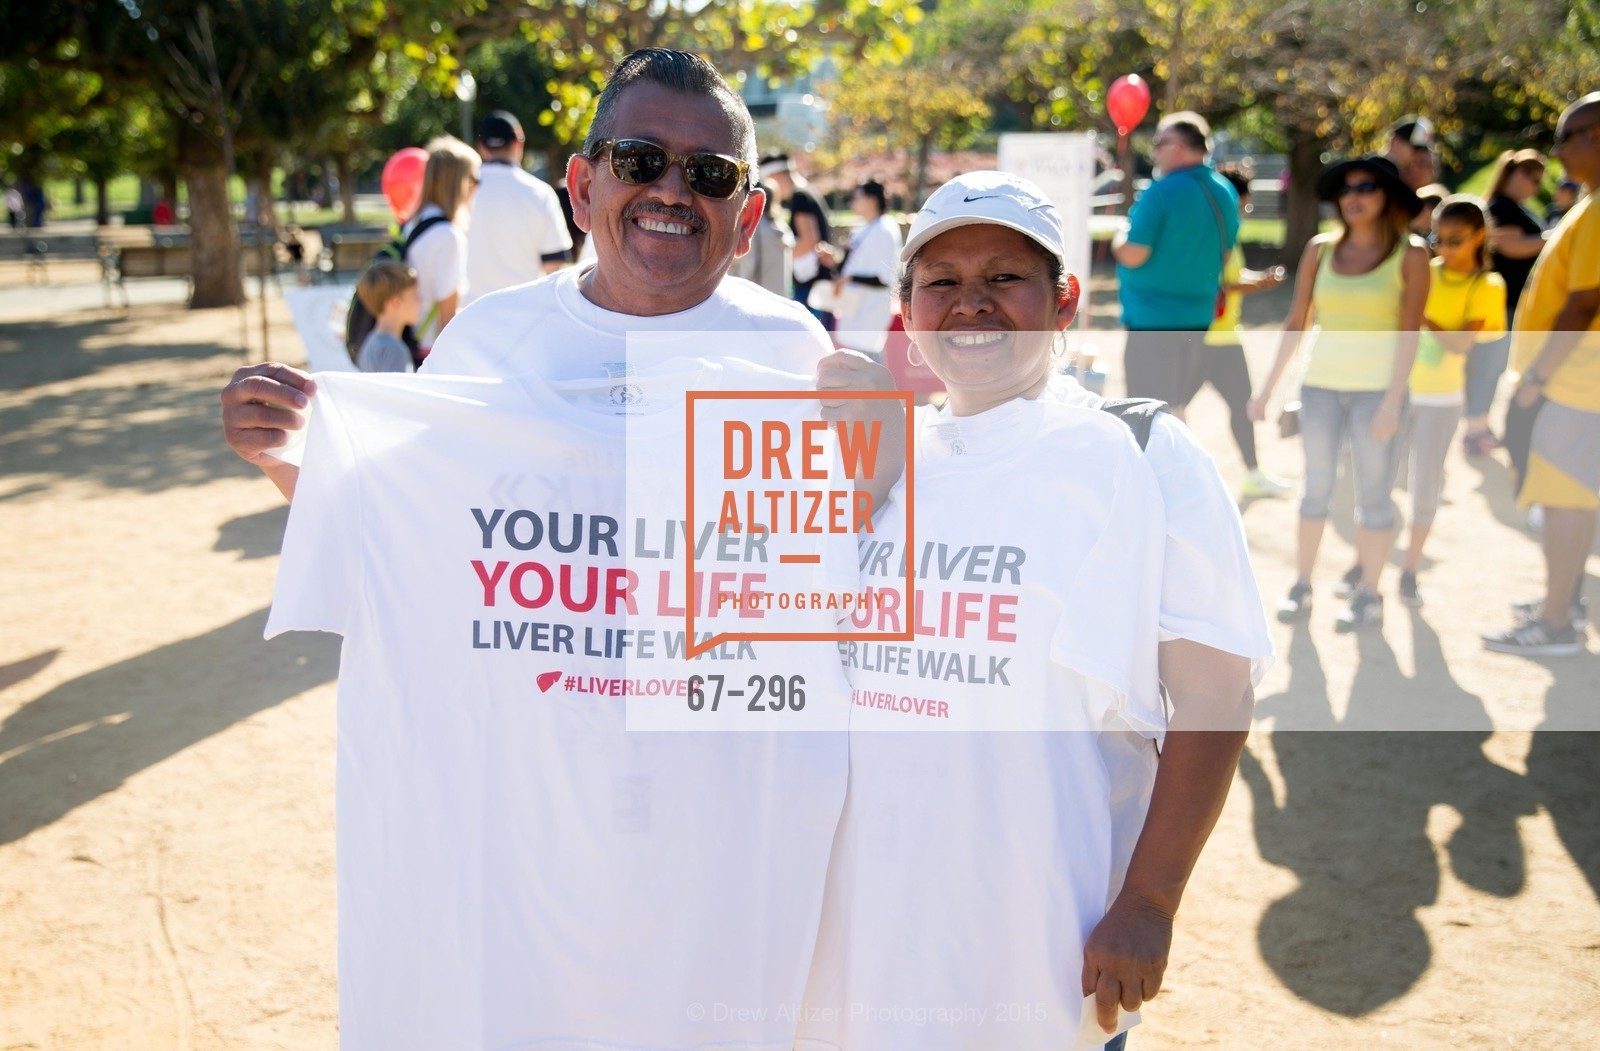 Top Picks, American Liver Foundation - San Francisco Liver Life Walk 2015, September 20th, 2015, Photo,Drew Altizer, Drew Altizer Photography, full-service event agency, private events, San Francisco photographer, photographer California